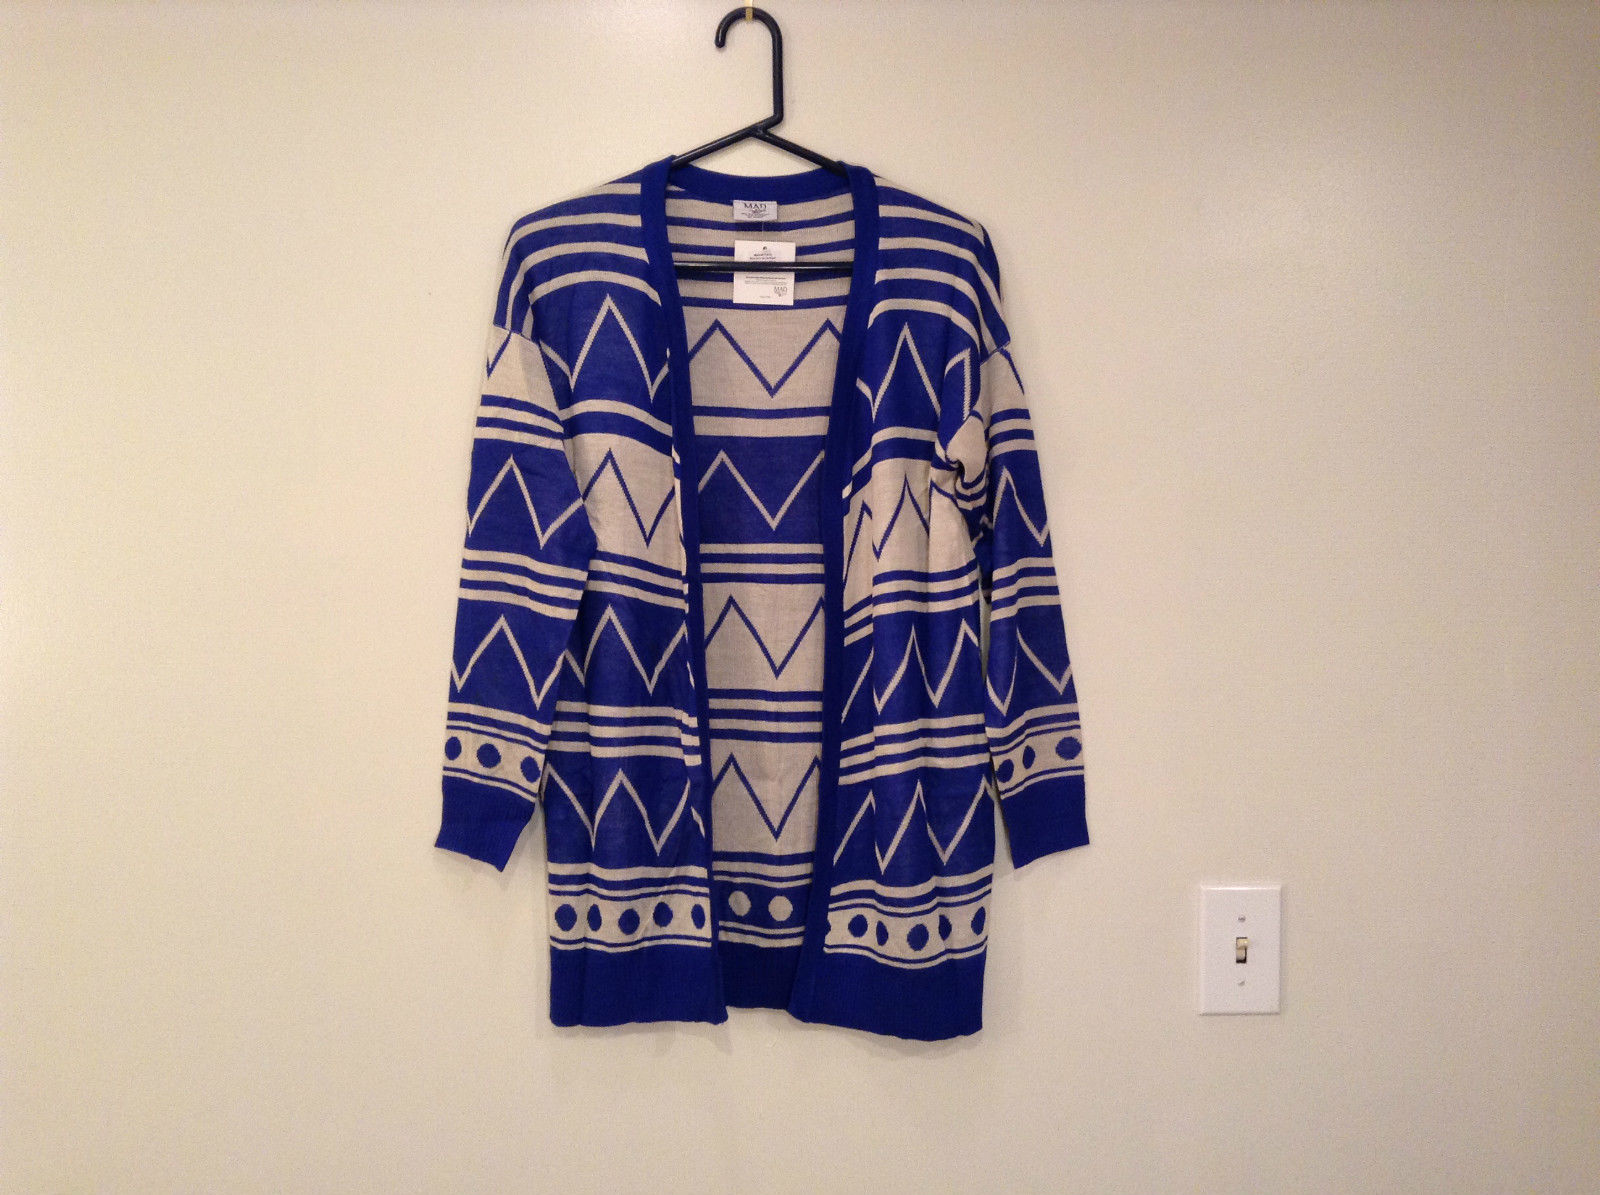 Blue and White Anorak Long Sleeve Cardigan Sweater Wrap New in Package